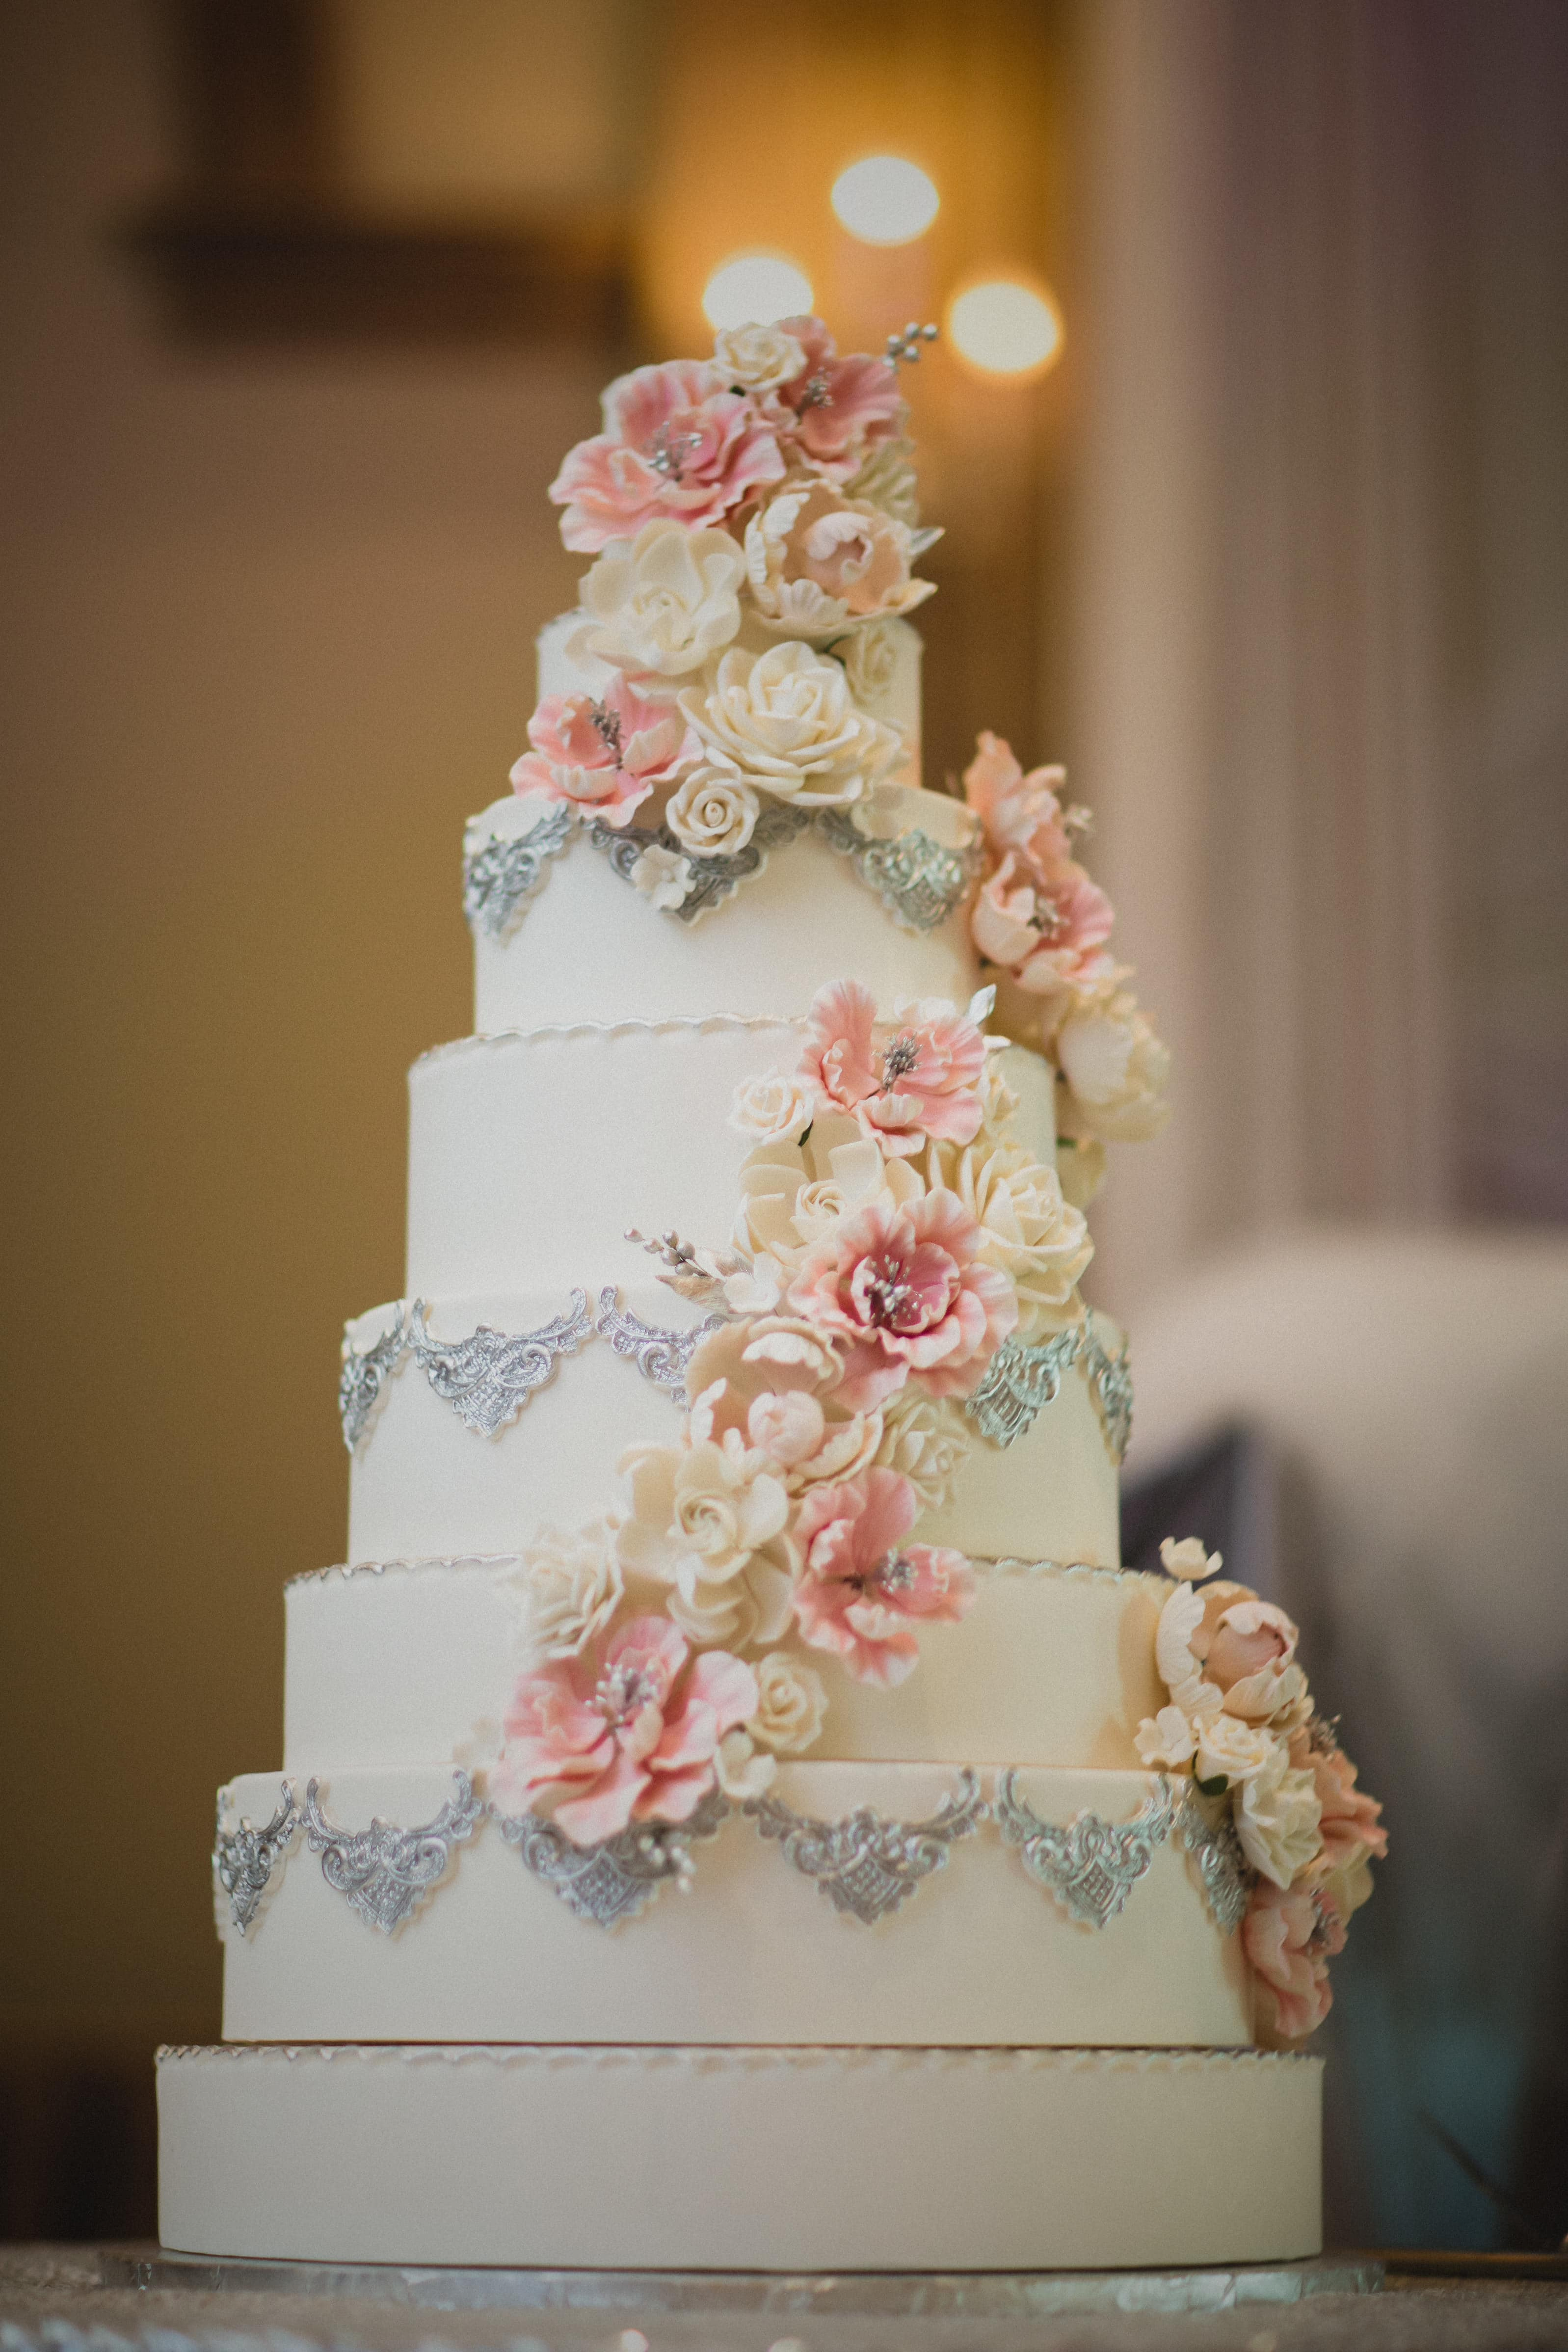 wedding cake with floral and lace design